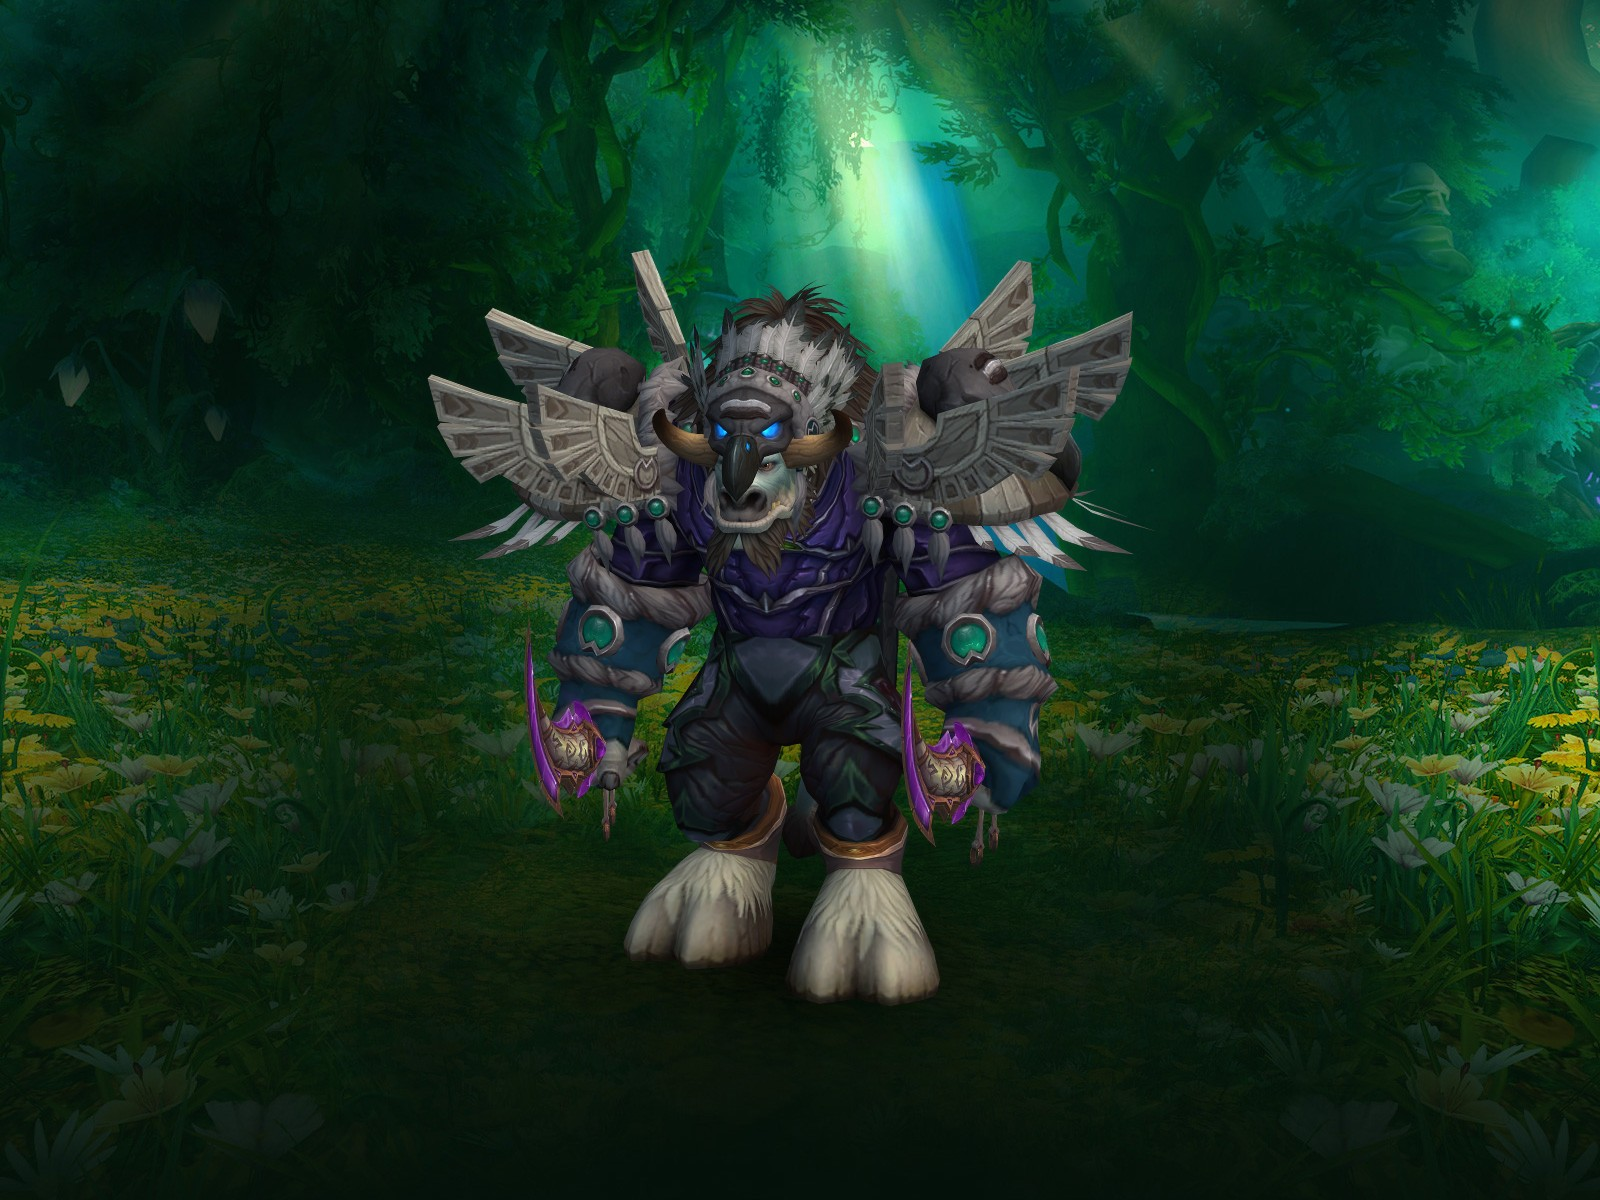 Buy Level 110 Tauren Druid Mythic Geared For Lvl 110